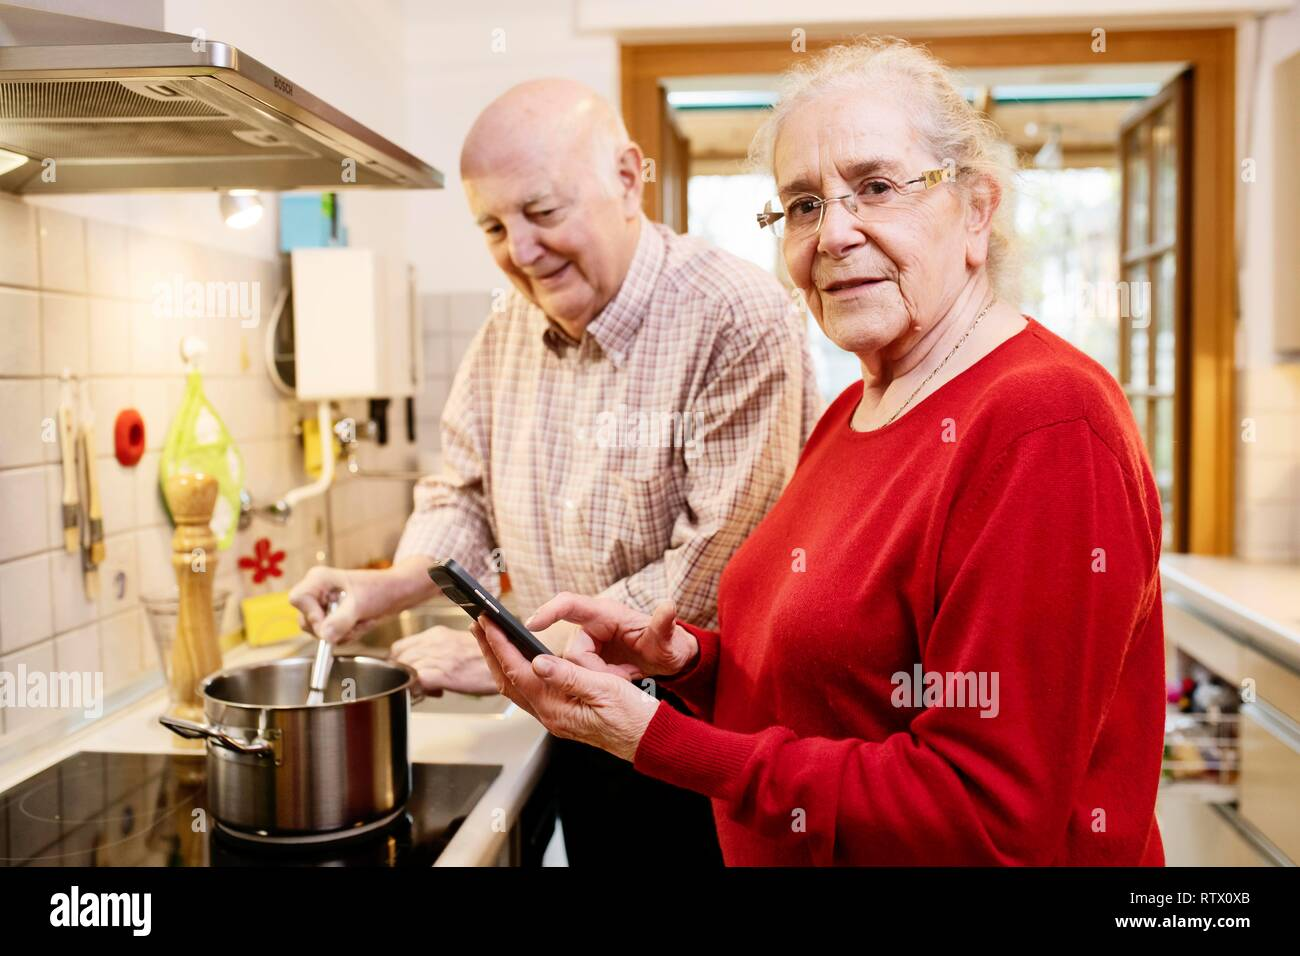 Senior couple standing at the stove cooking according to a recipe from the Internet, Germany - Stock Image